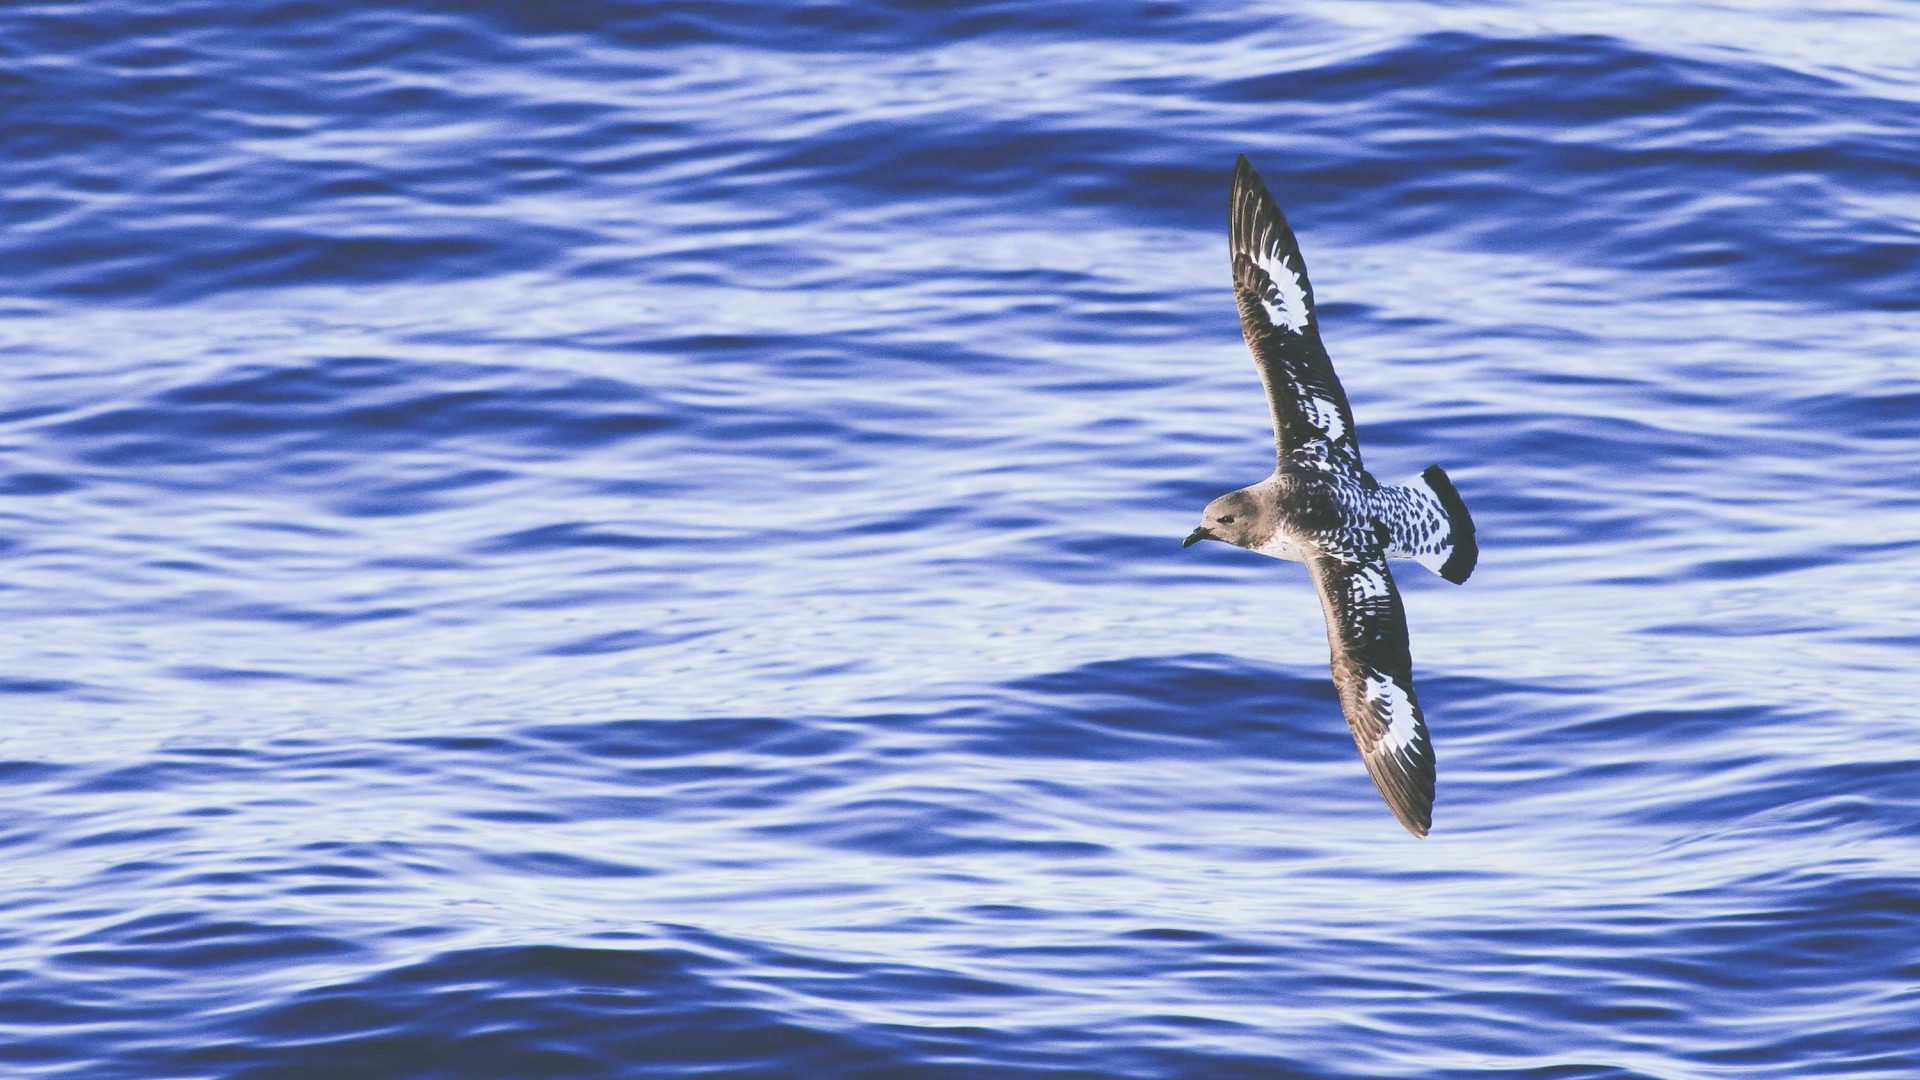 A Cape Patrel or Cape Pigeon glides a short distance above the sea in the Falkland Islands.